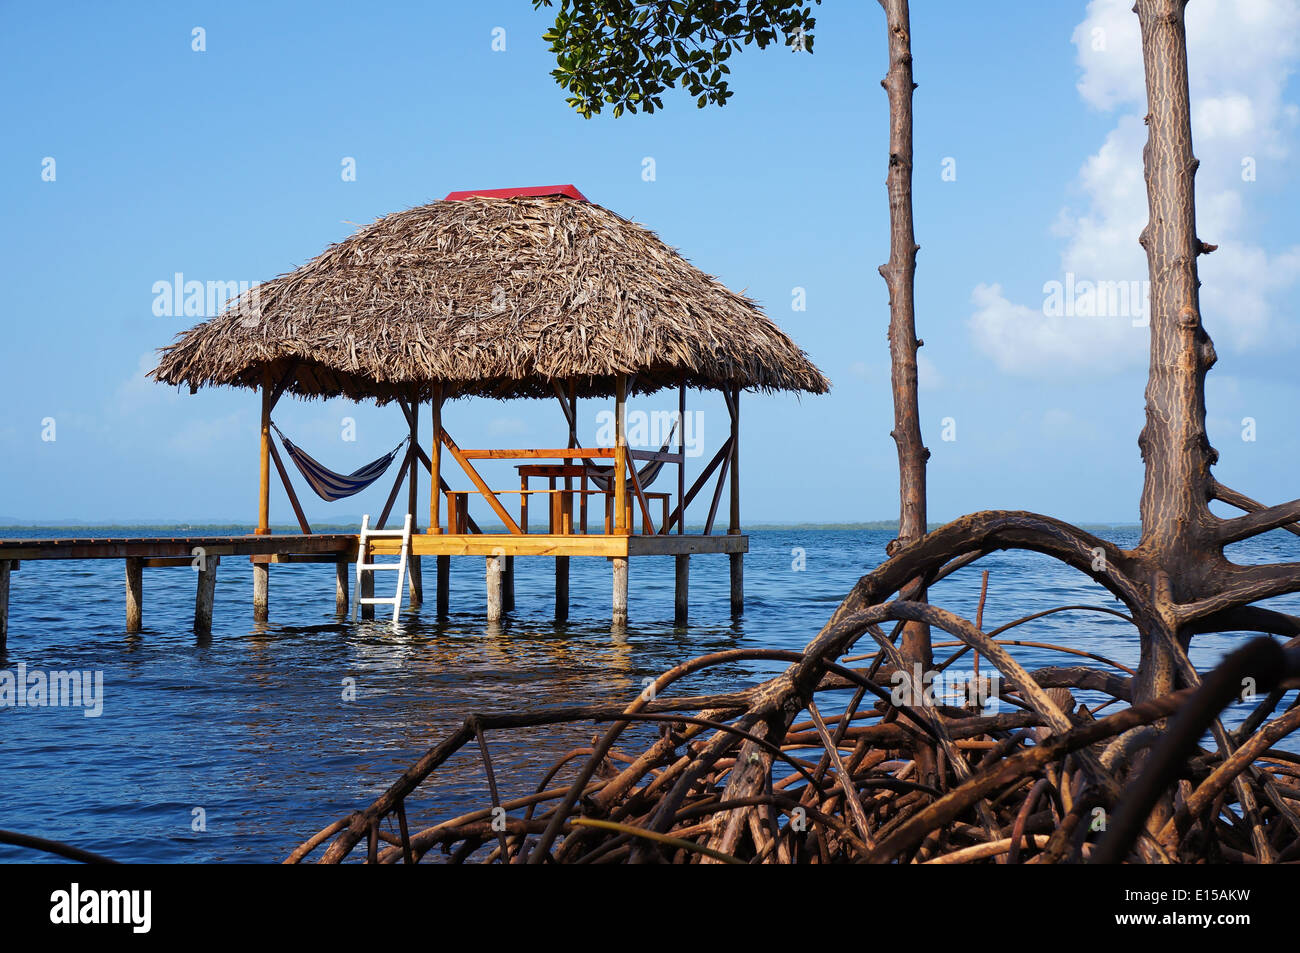 Thatched hut with hammock over the sea and mangrove tree roots in foreground - Stock Image